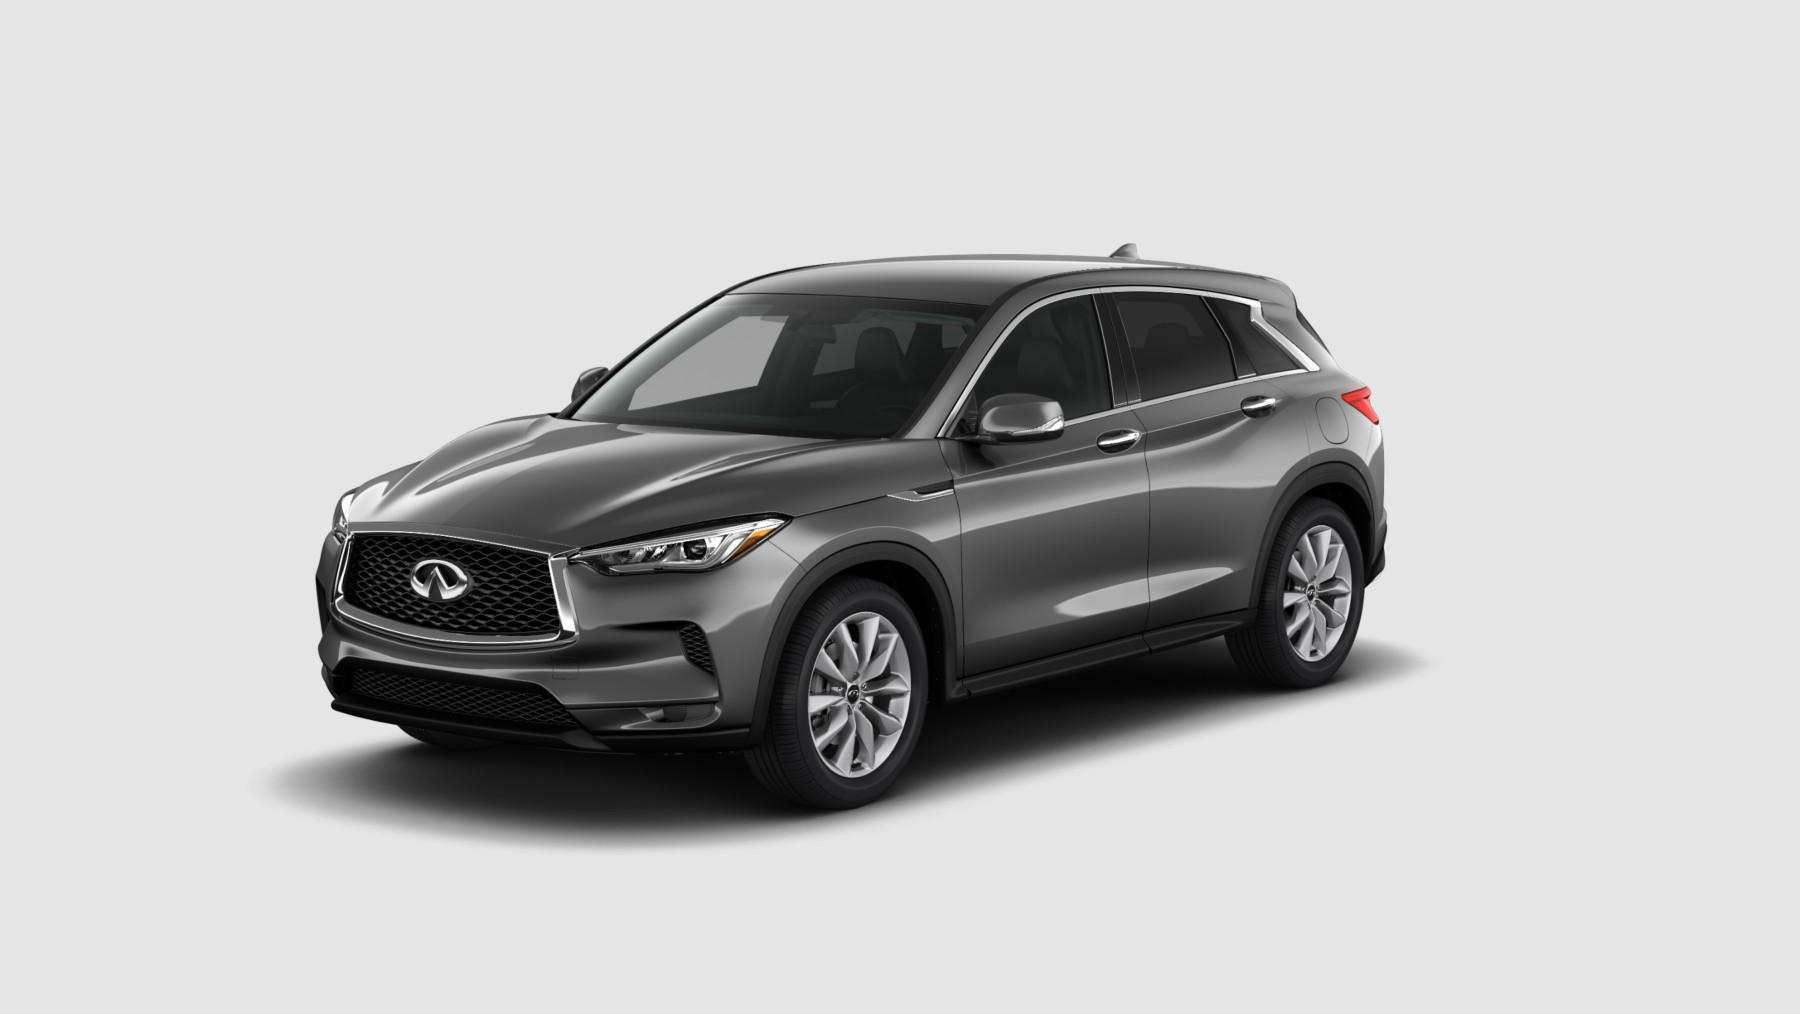 86 All New 2019 Infiniti Qx50 First Drive Release Date